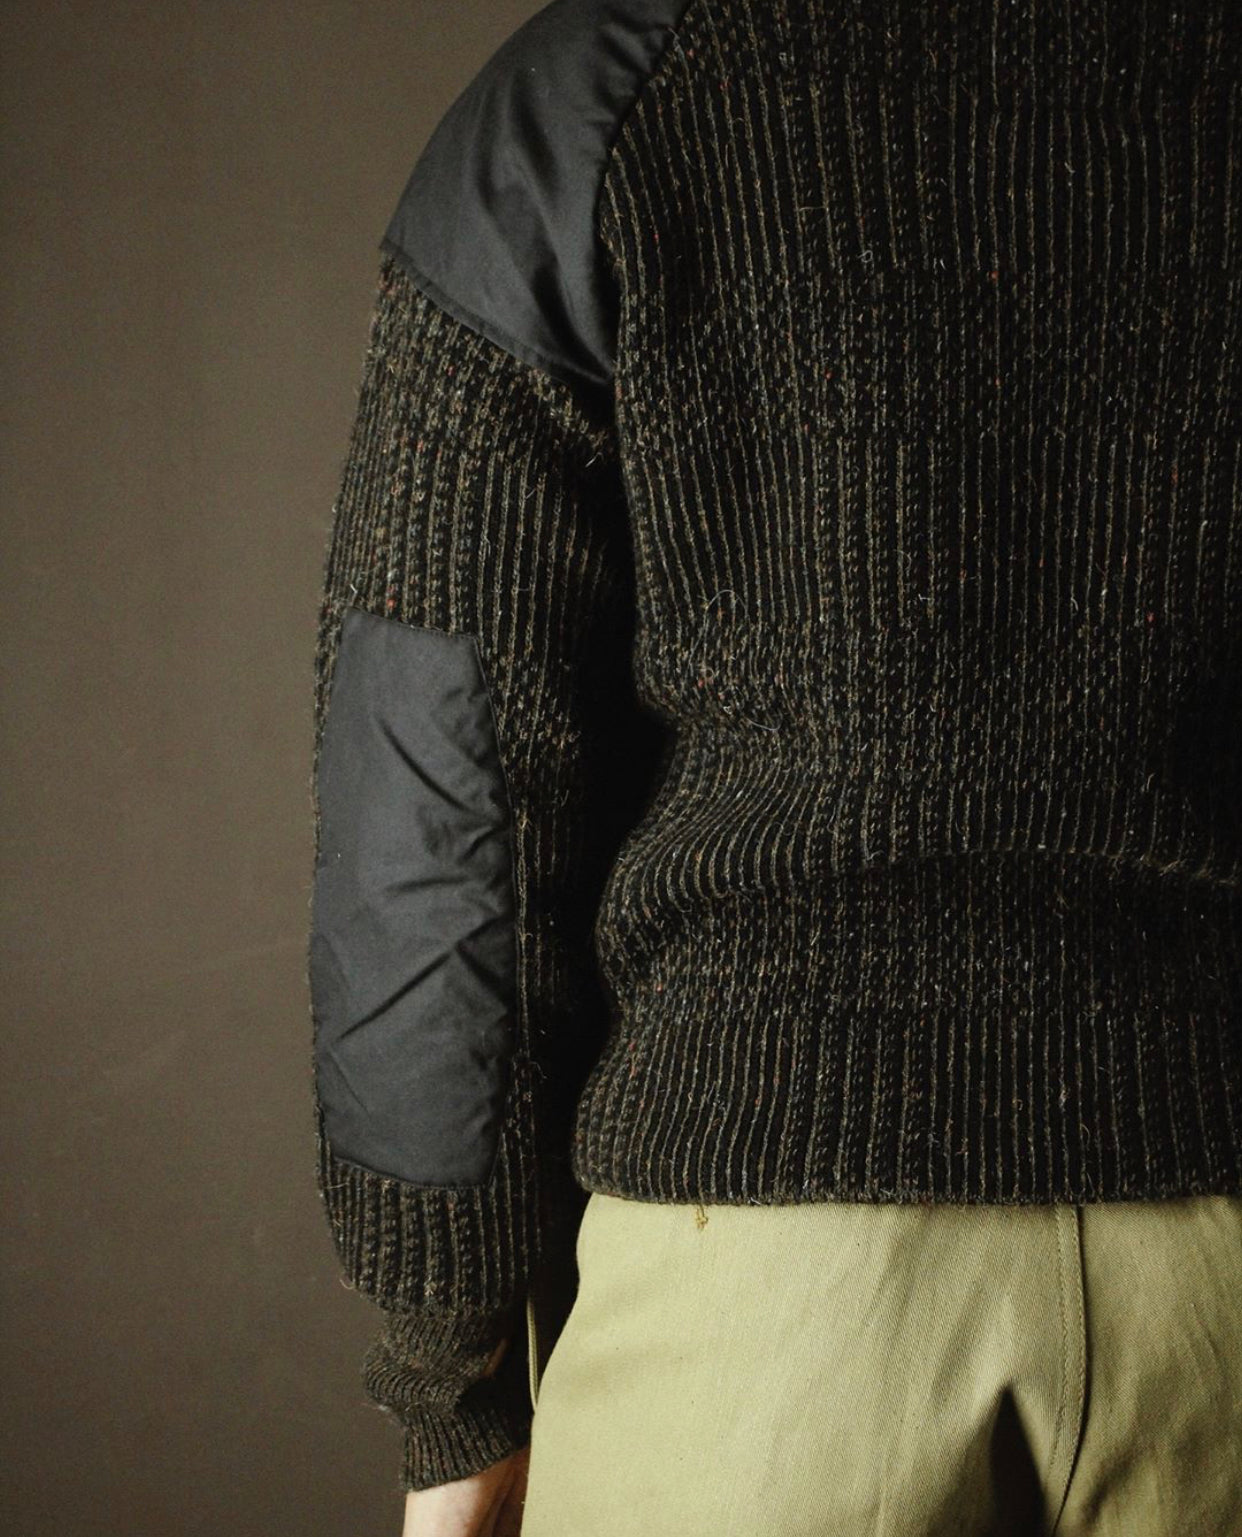 Commando Crew Neck (Wool), Nigel Cabourn - The Signet Store